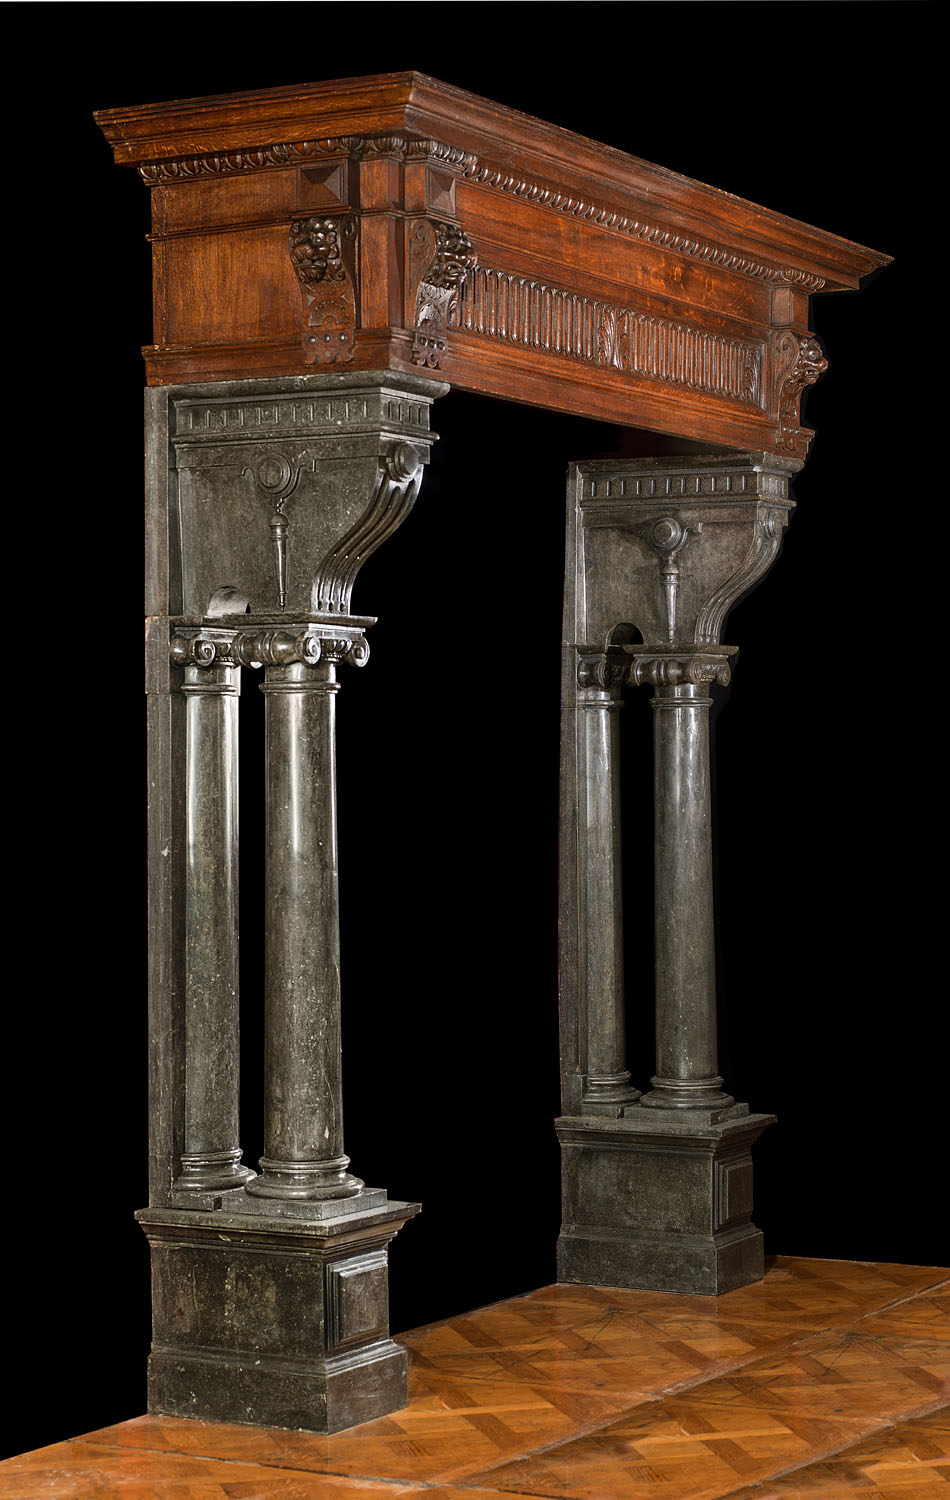 An antique fireplace mantel in Renaissance manner.